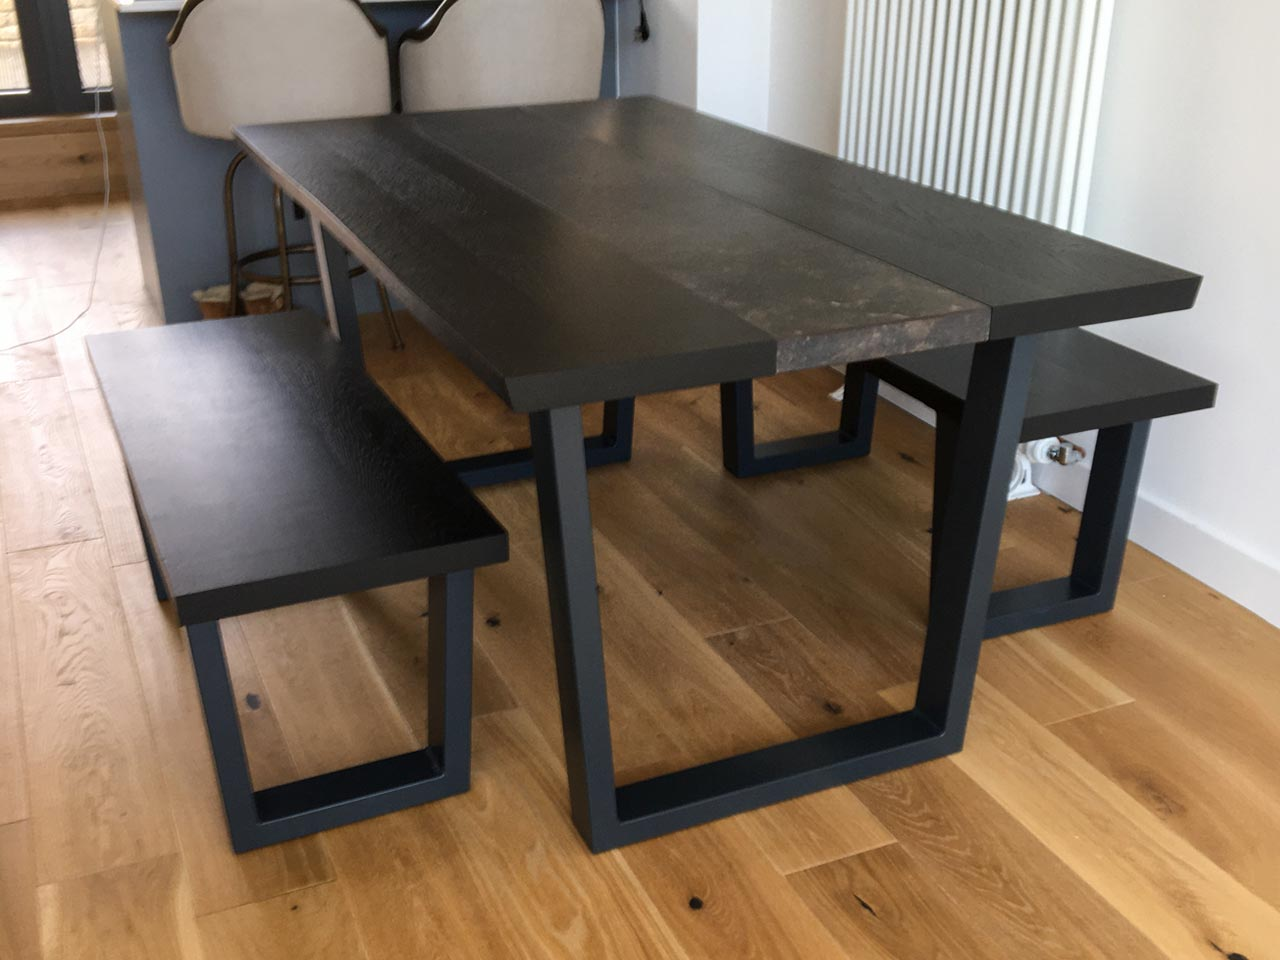 abacus-tables-project-930-pic-3